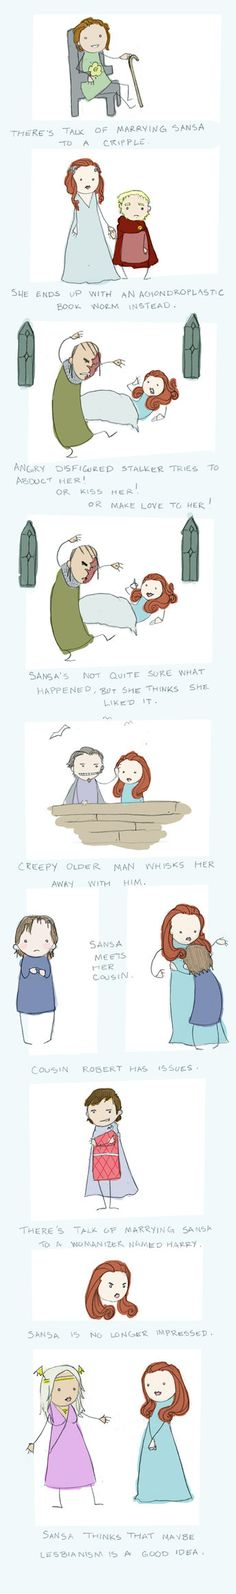 """Sansa's Dating Woes- haha, this is priceless! """"Not sure what happened, but she thinks she liked it..."""""""